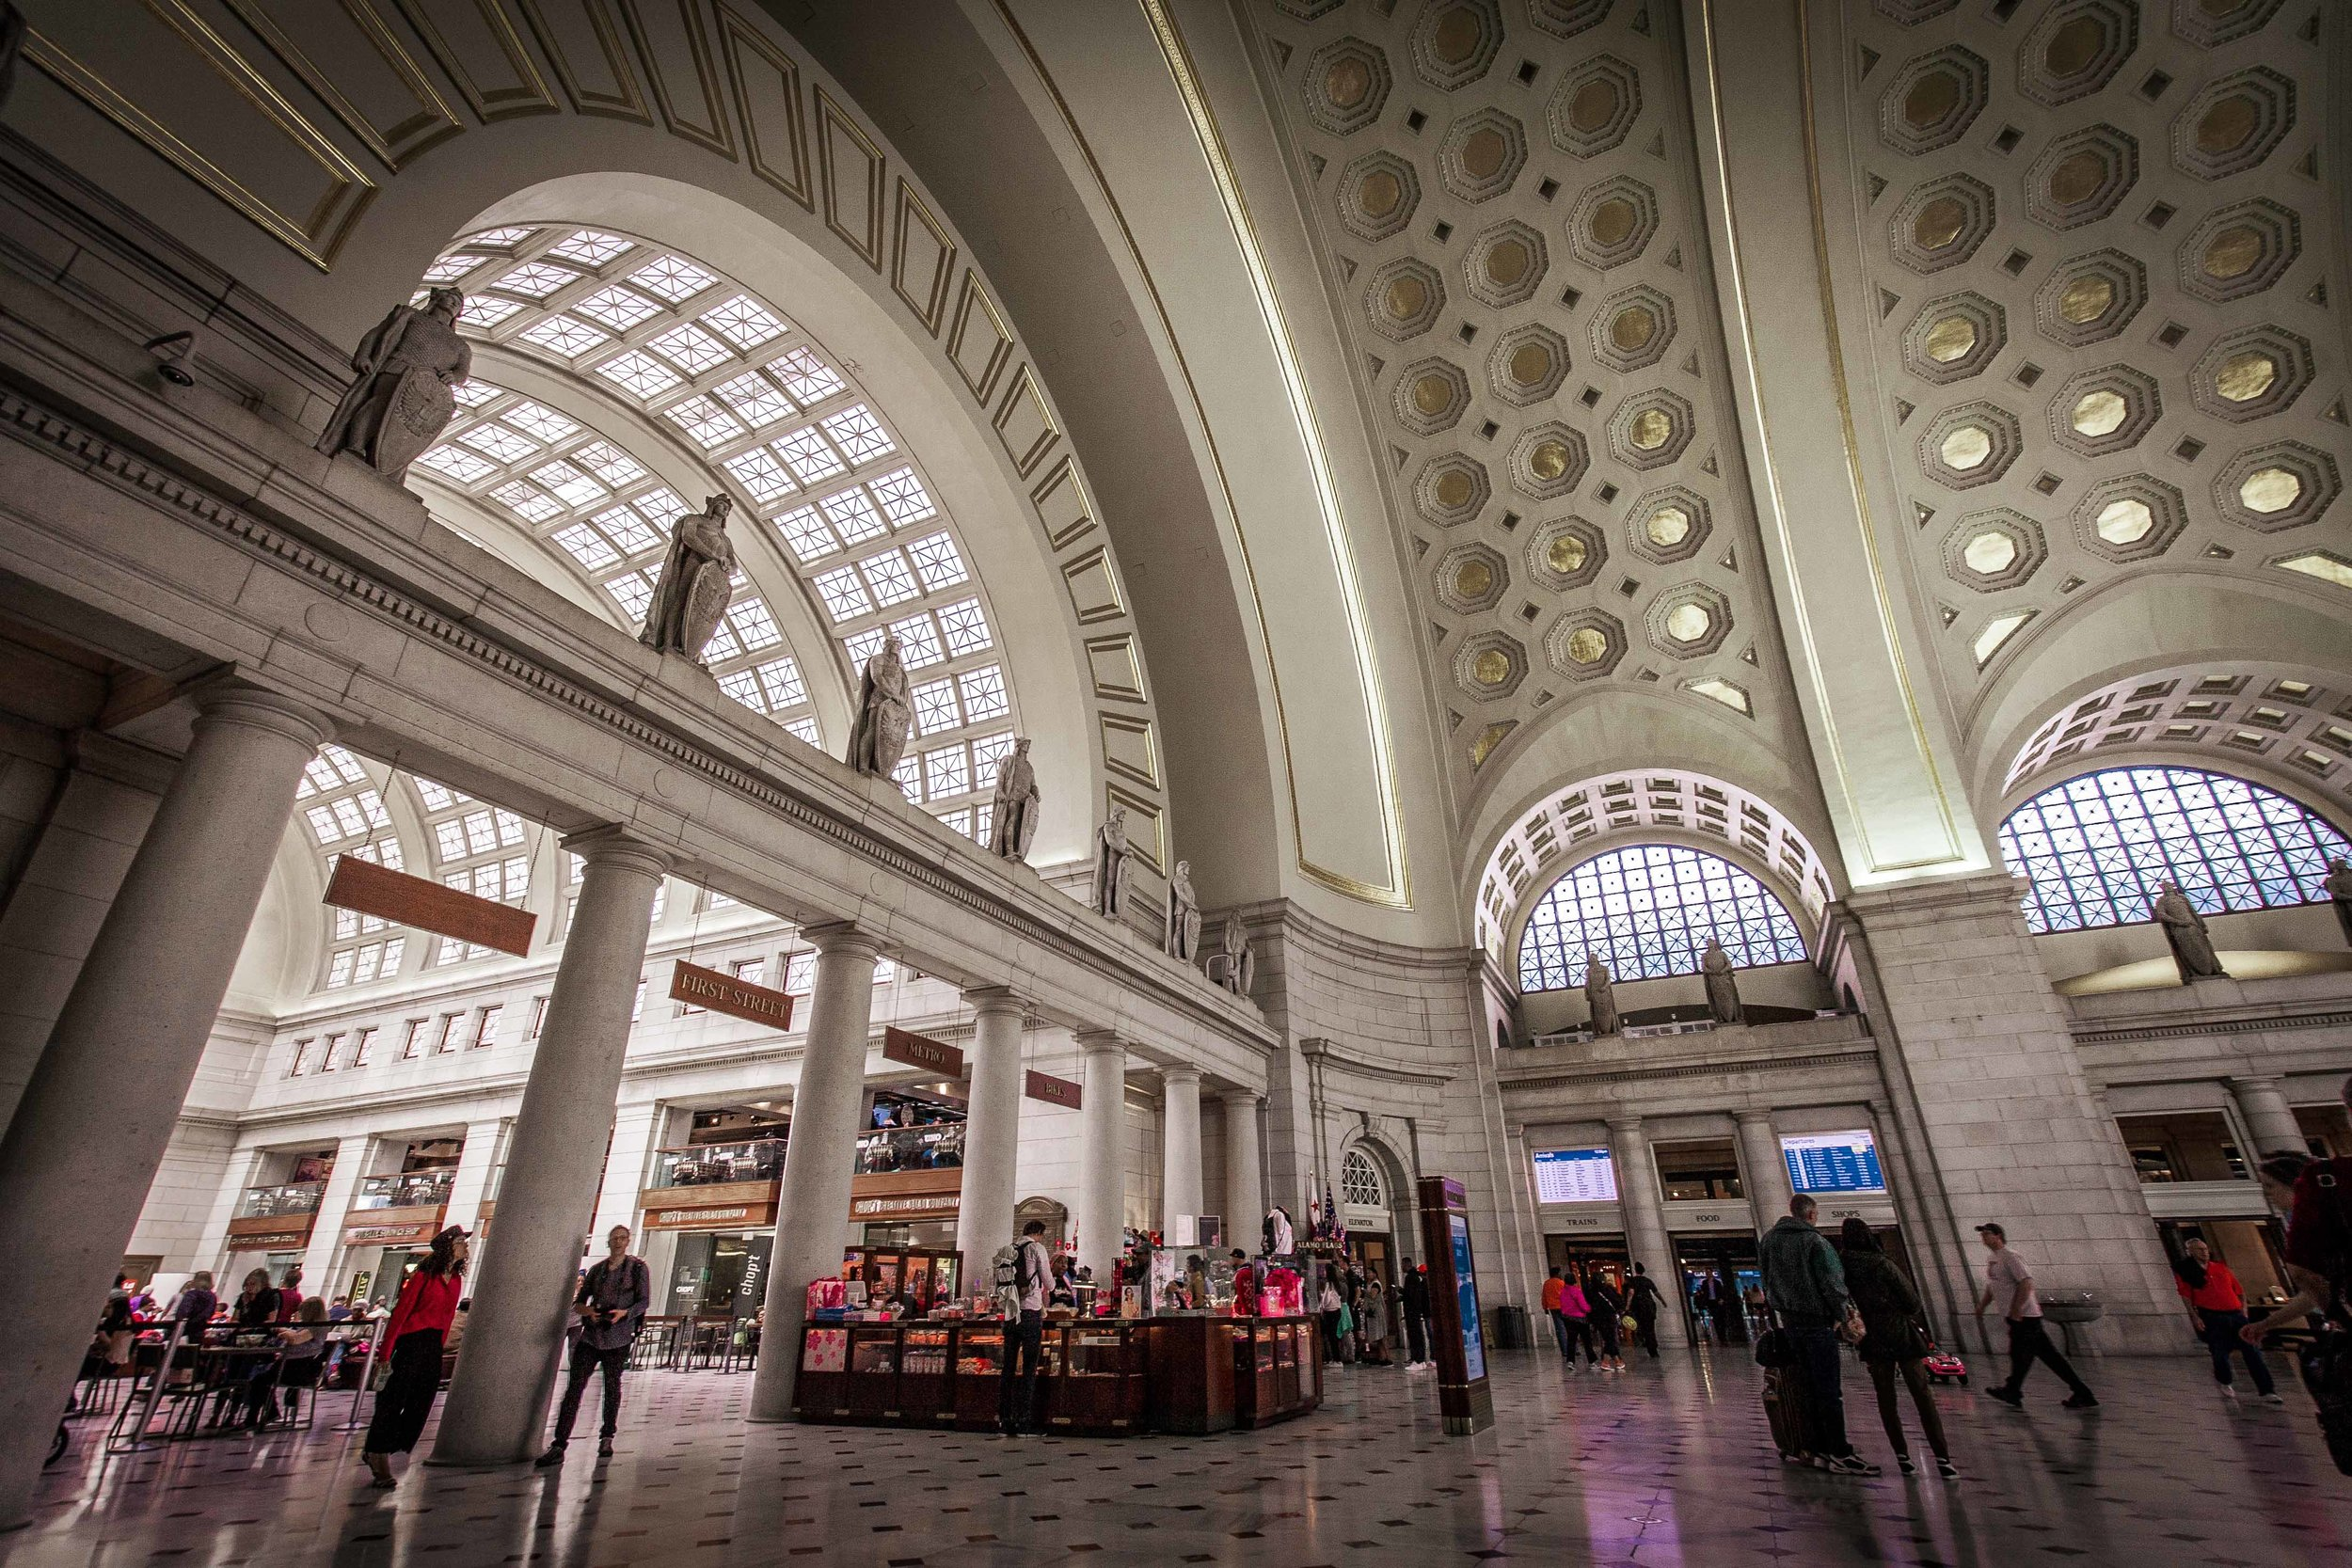 Main Lobby of Union Station - Washington D.C. 2017